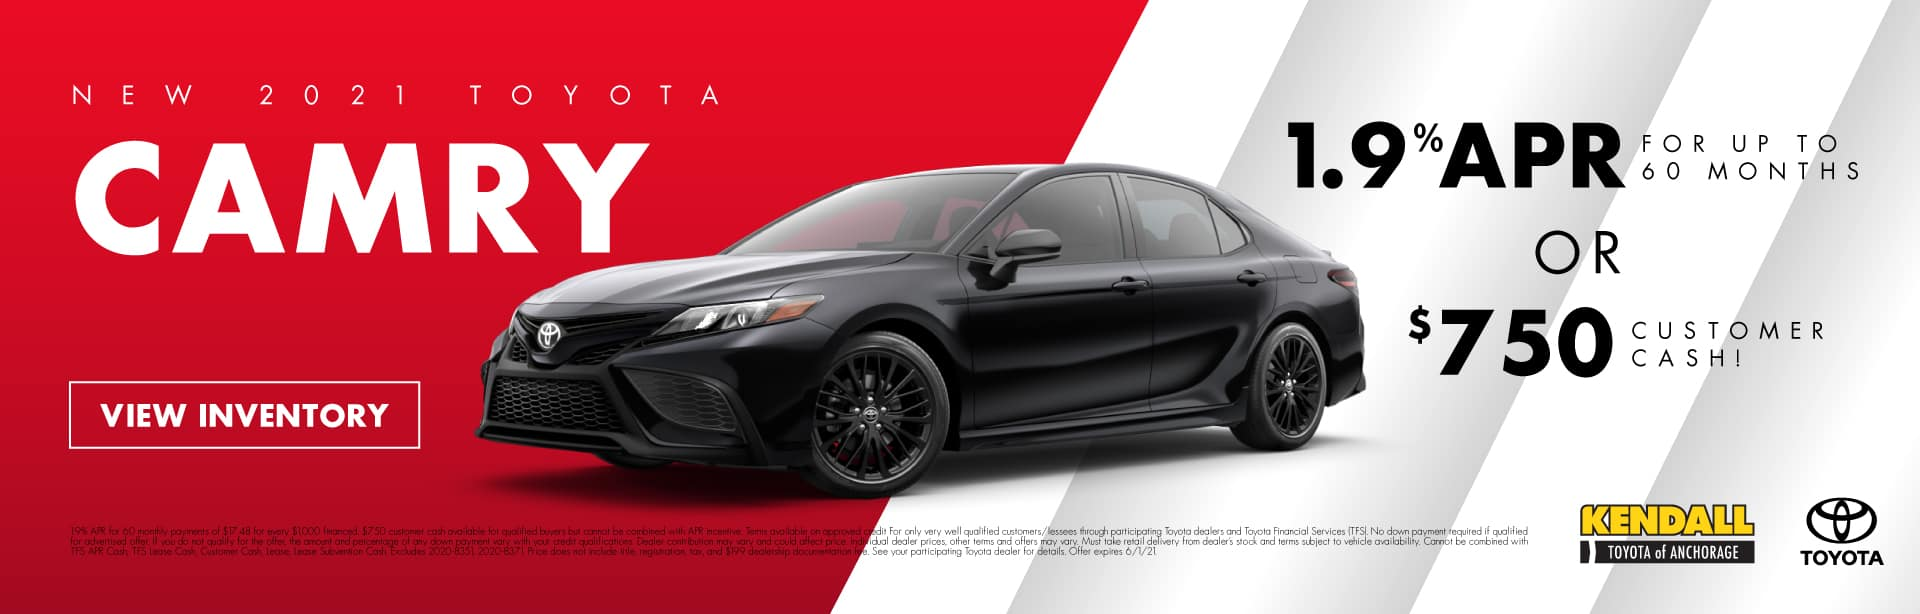 17525-anctoy-May21-Web-Banners-CAMRY